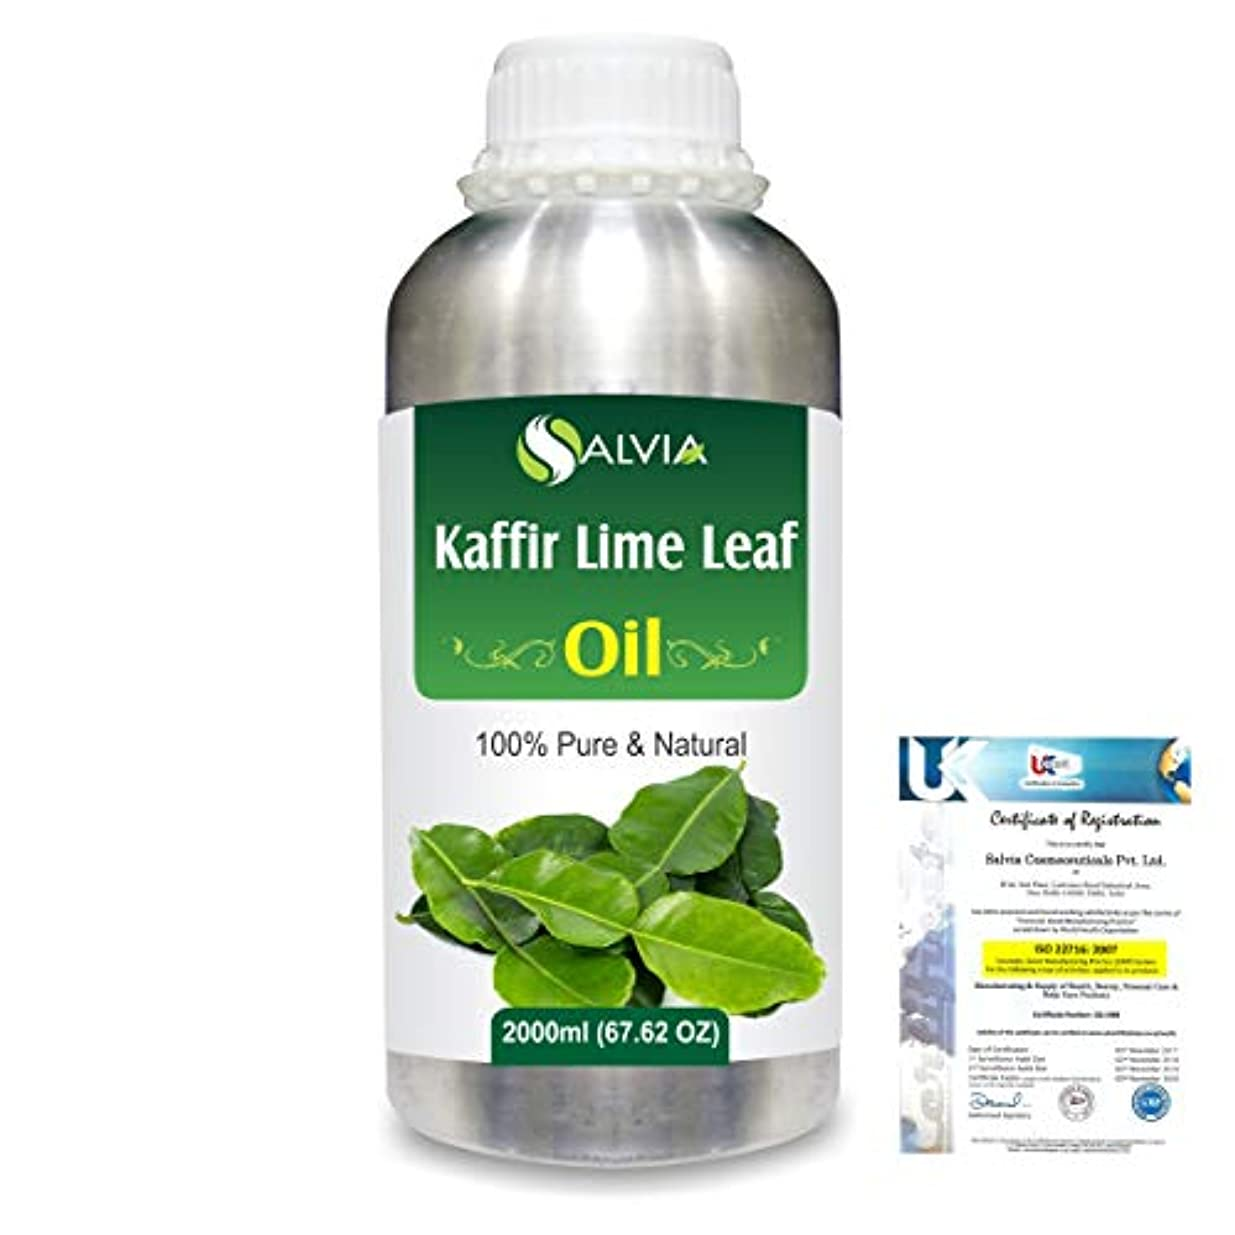 高原亡命石のKaffir Lime Leaf (Citrus Hystrix) 100% Natural Pure Essential Oil 2000ml/67 fl.oz.